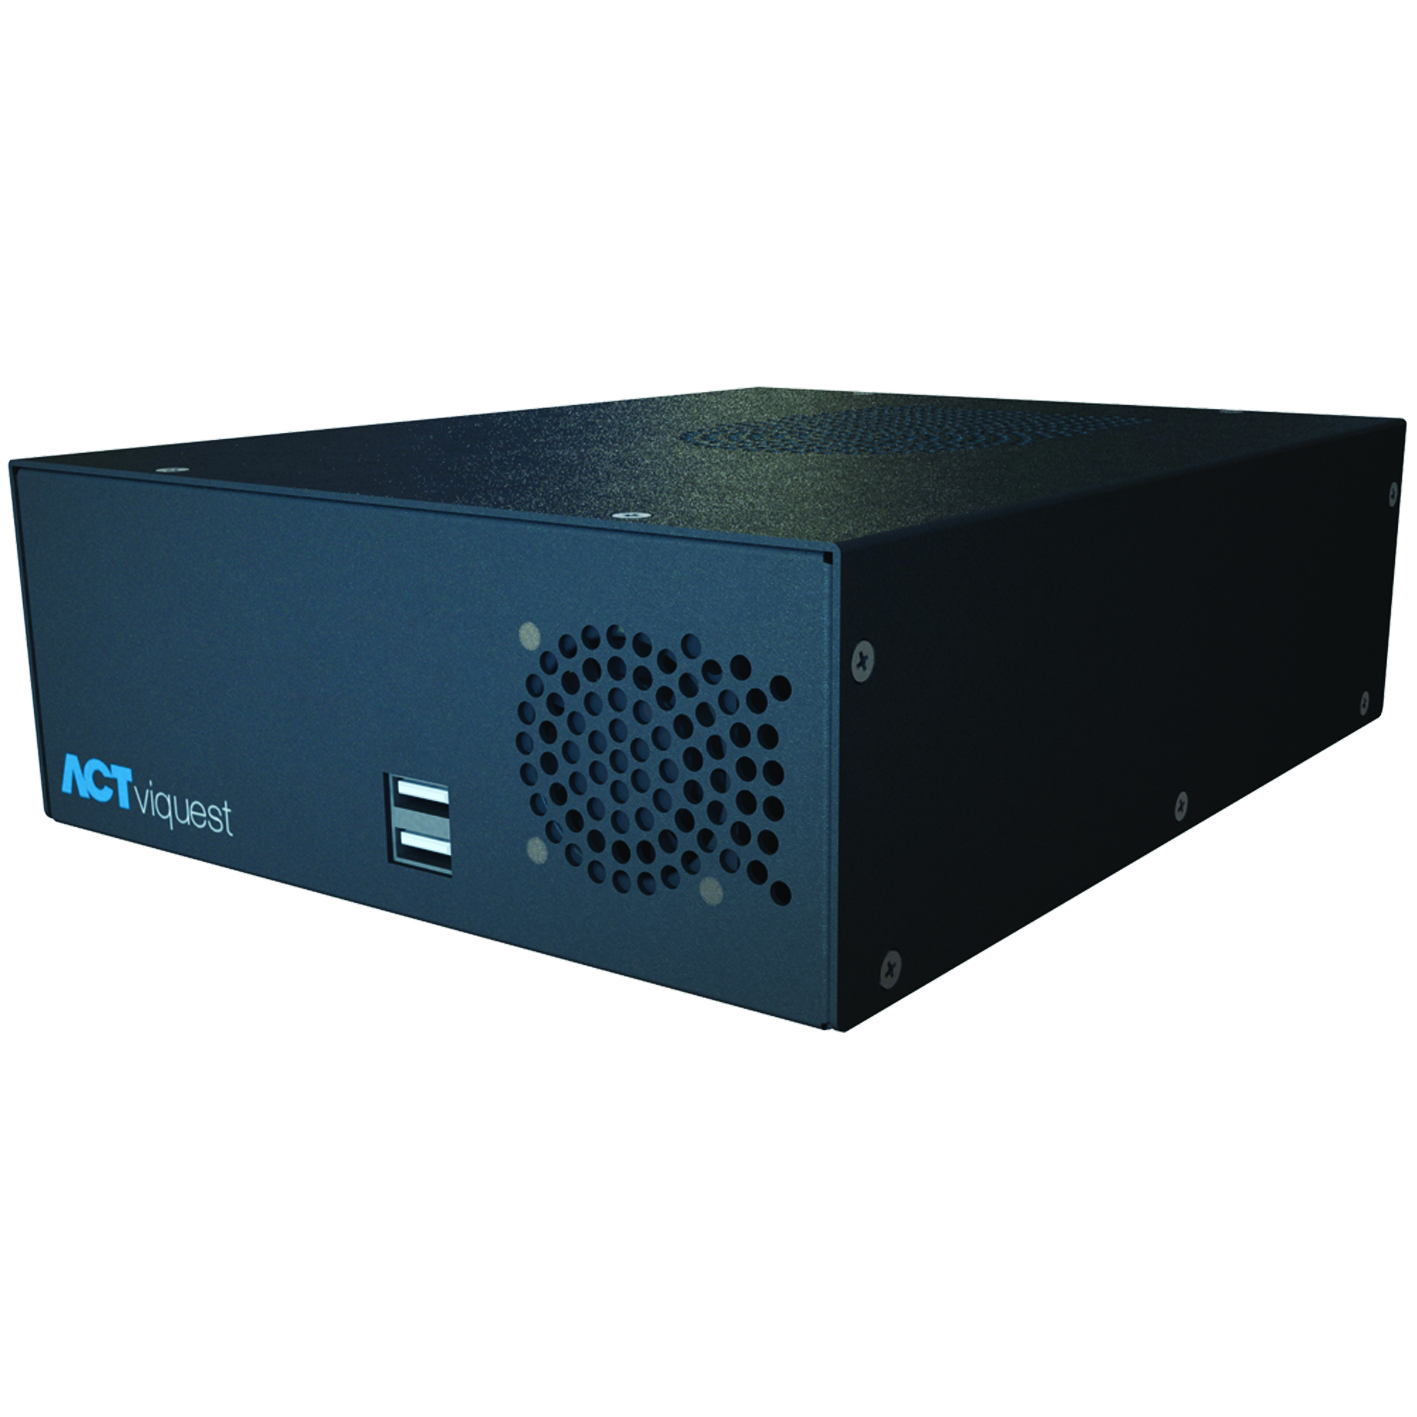 ACTviquest 4TB integrated access control and VMS solution